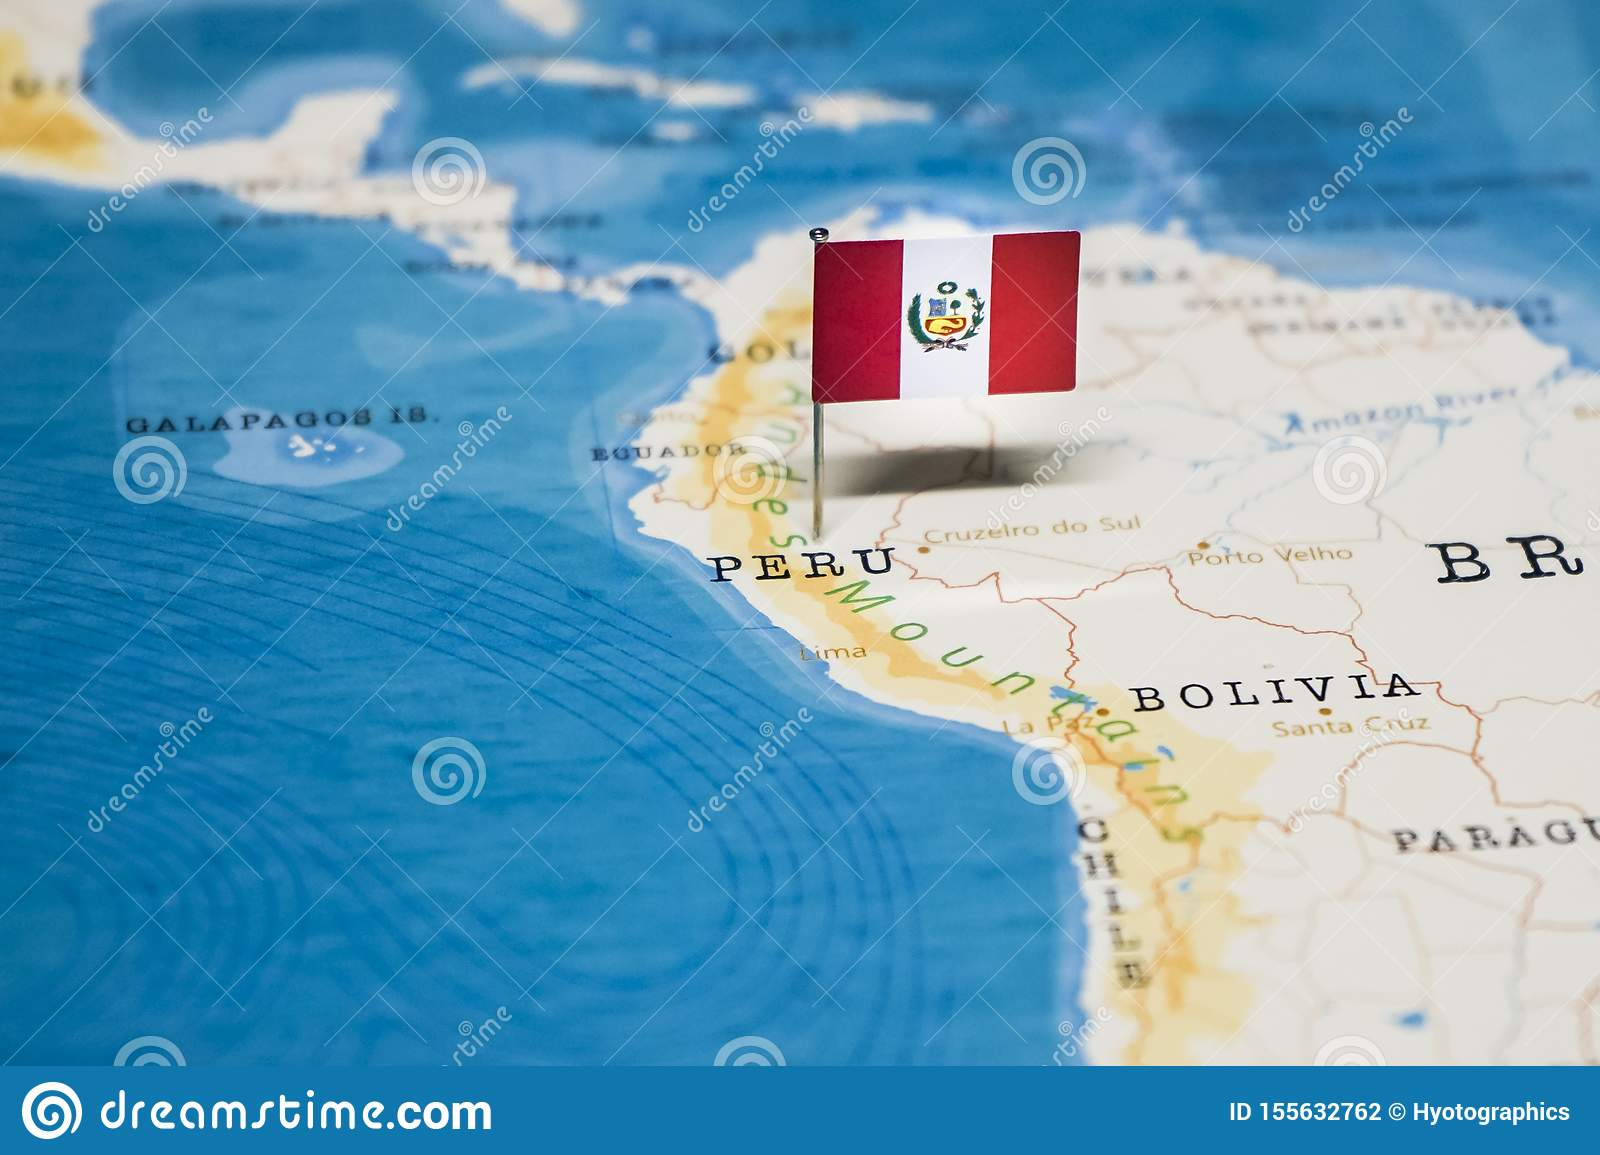 The Flag of Peru in the World Map